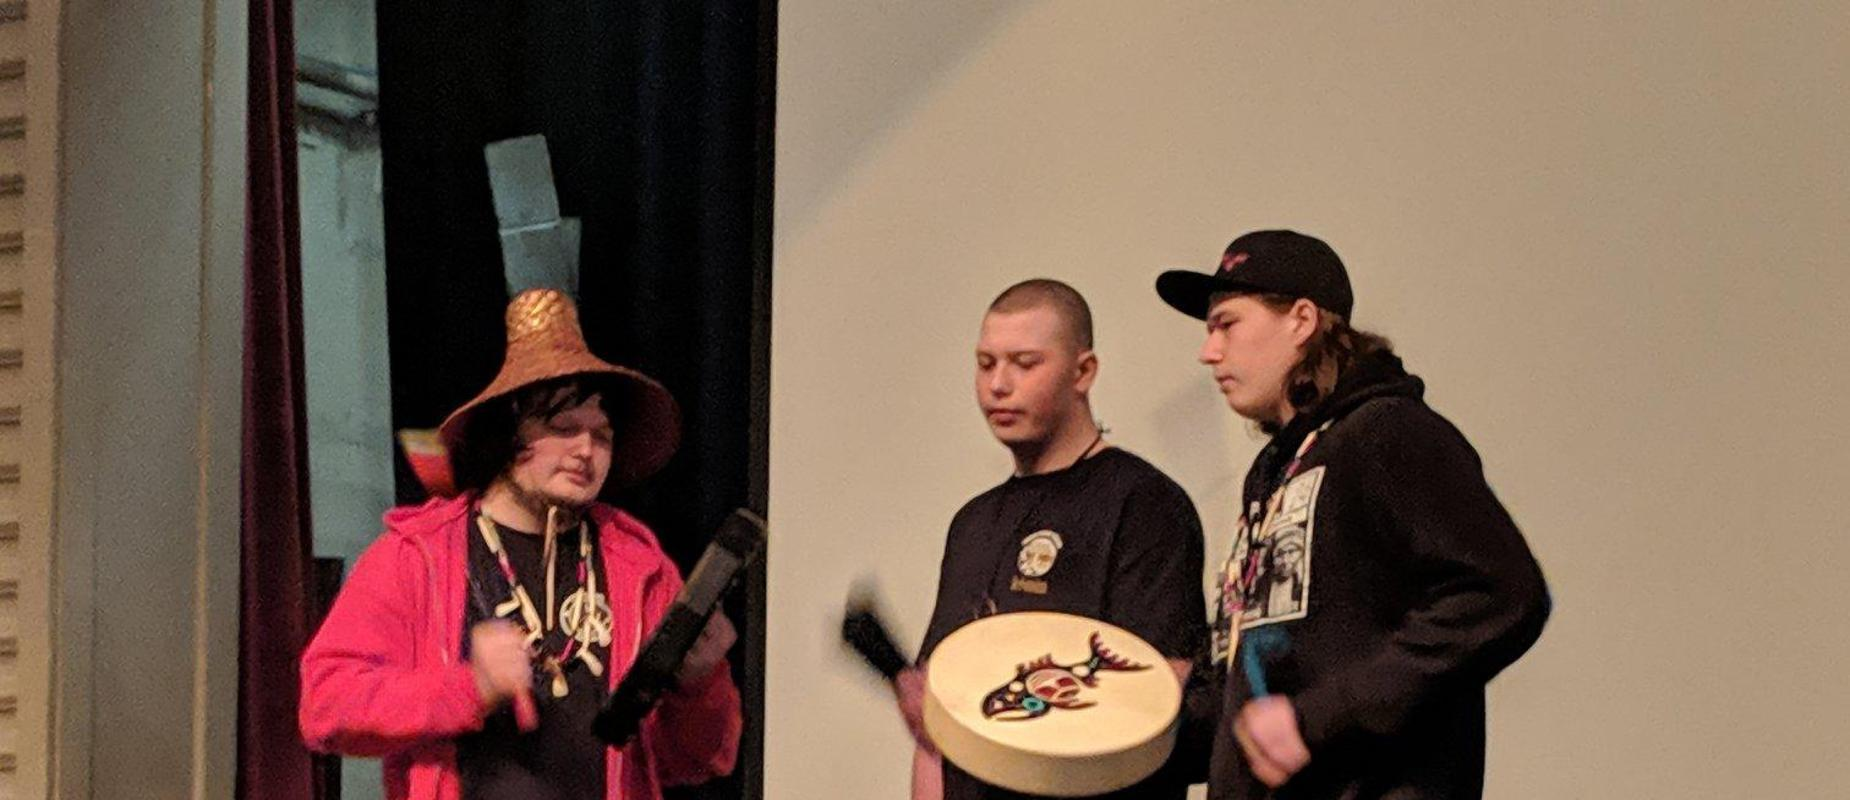 Opening Day Native American Students on Stage